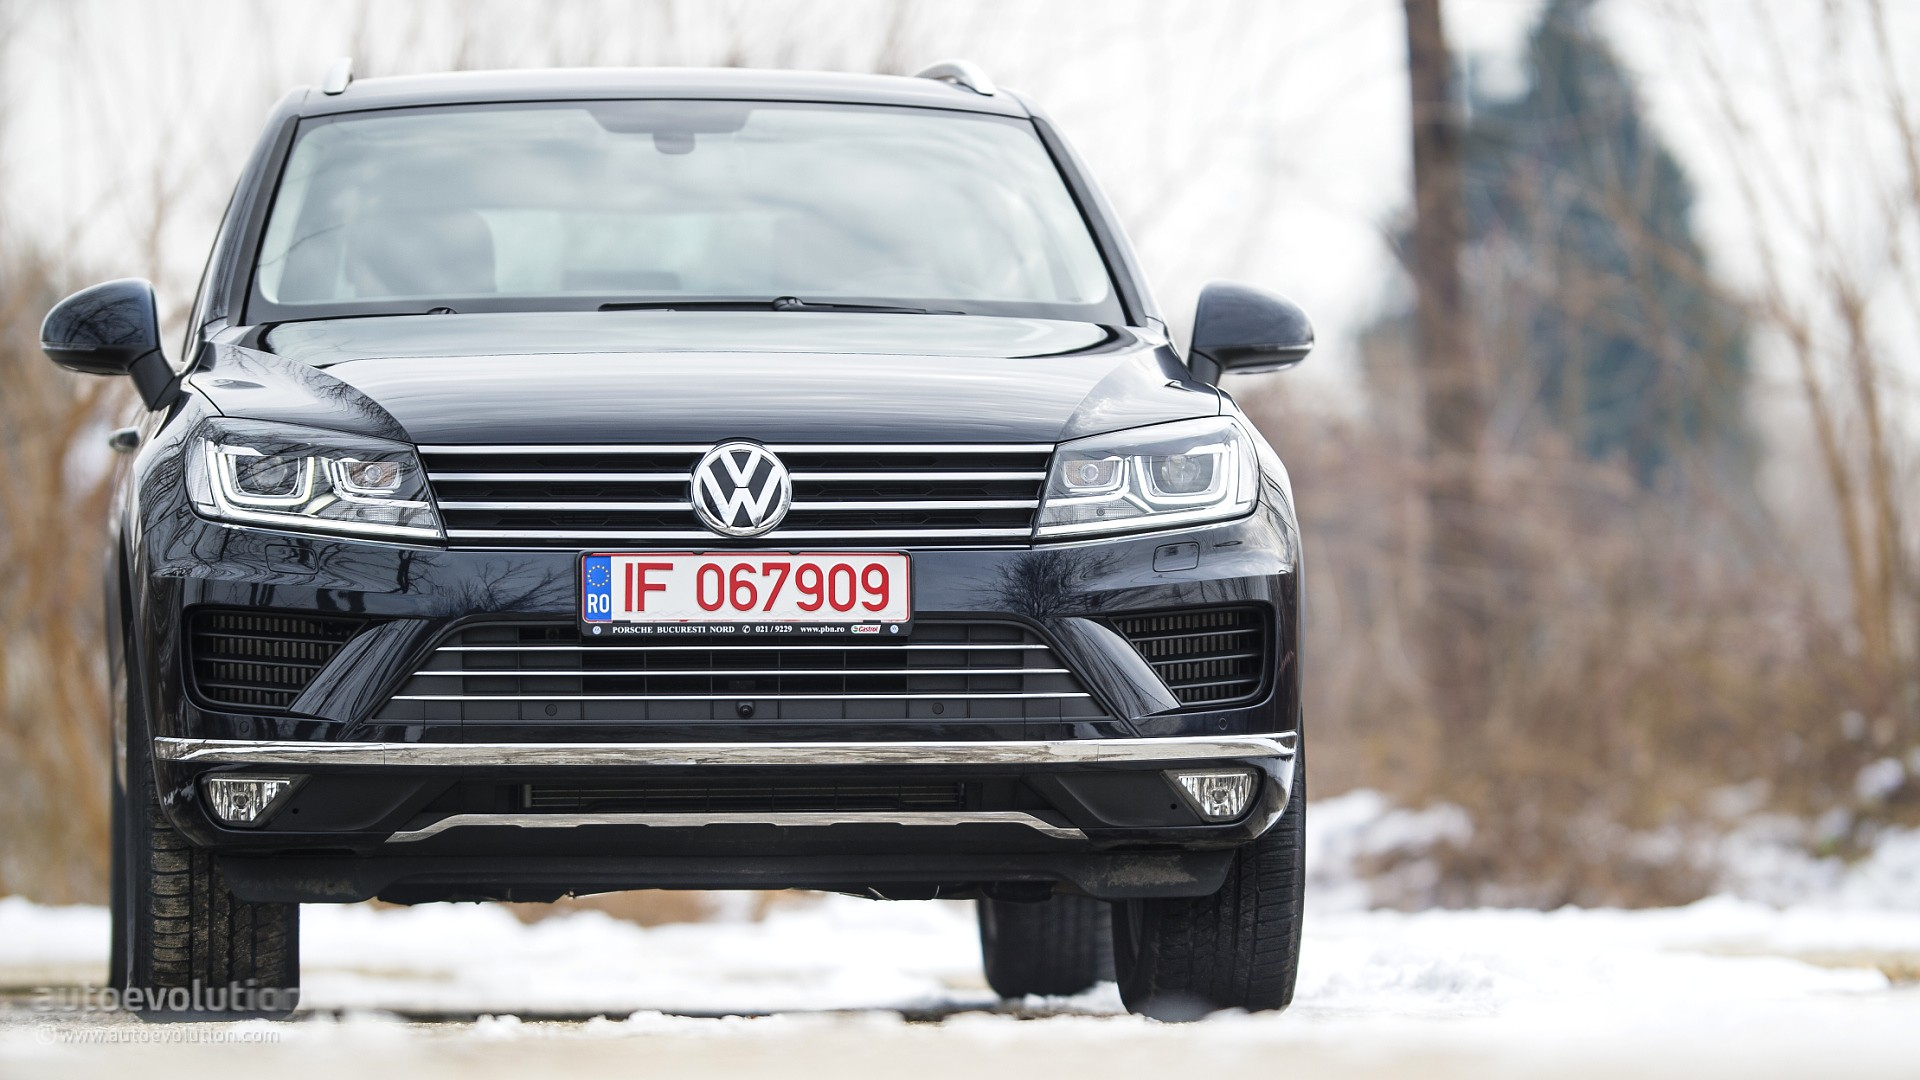 2015 Volkswagen Touareg Review